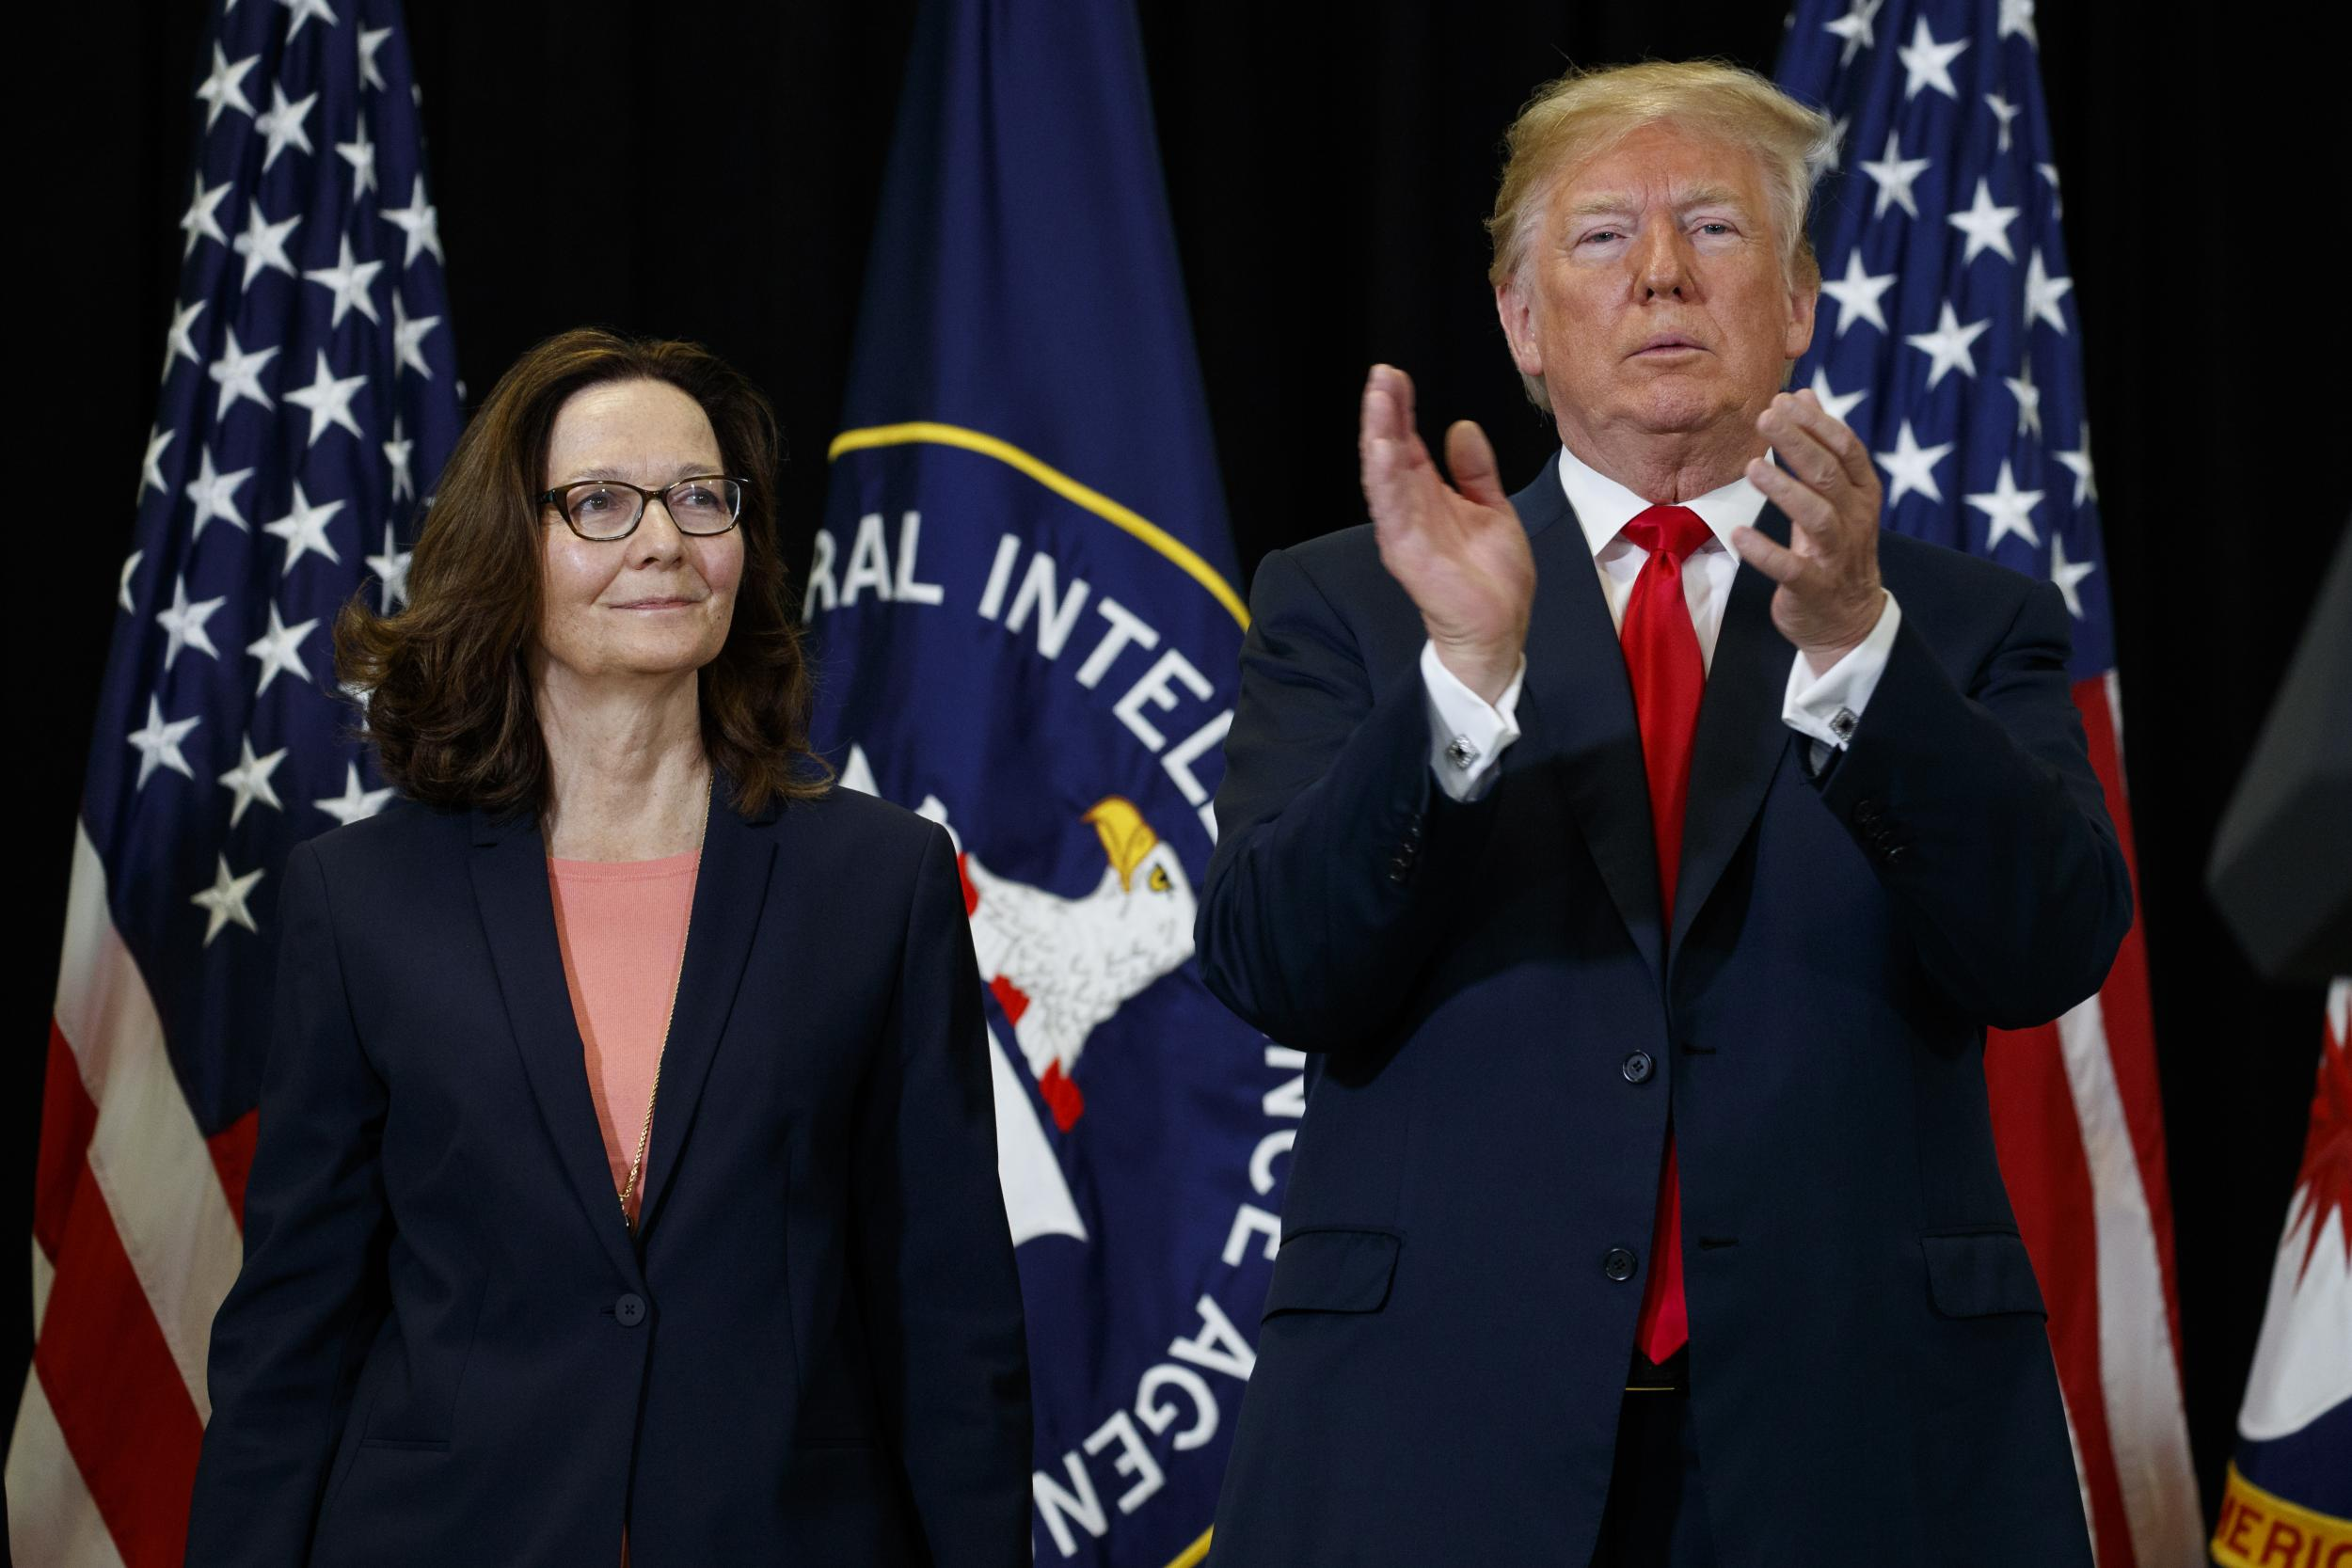 Trump says CIA is 'reasserting America's strength' at Haspel's swearing-in while still accusing FBI of 'spying'